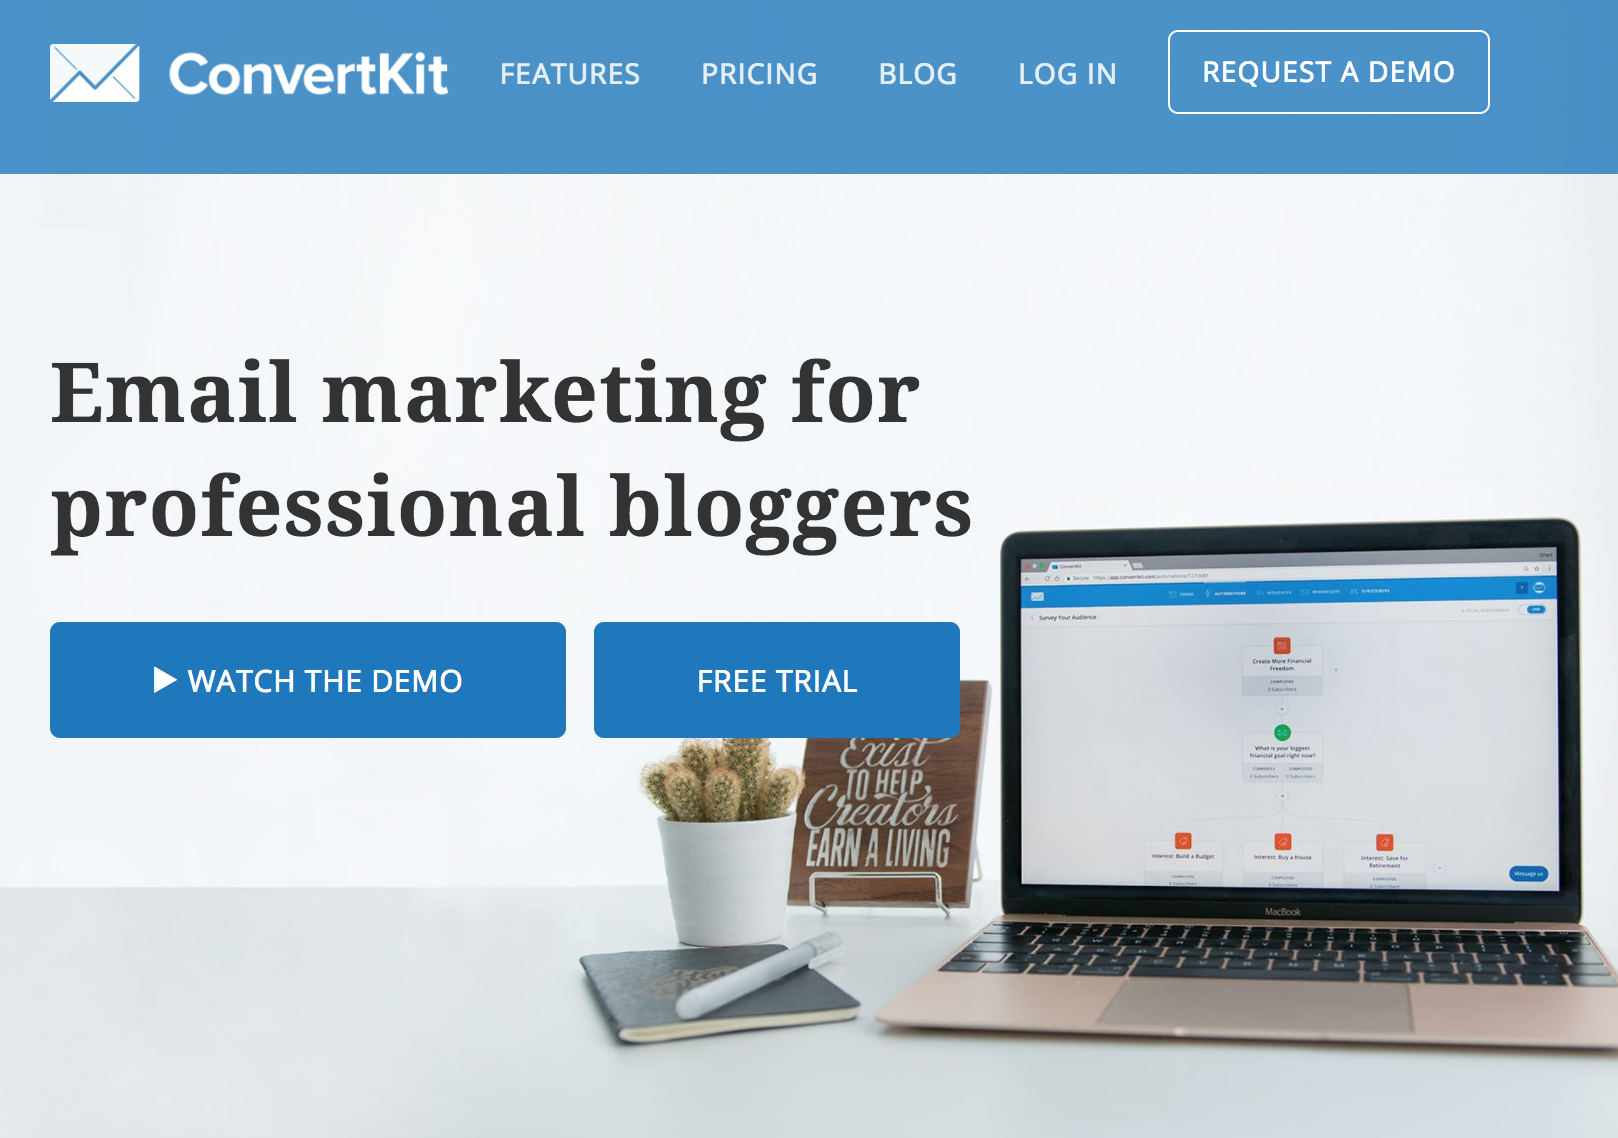 ConvertKit for Conversion Rate Optimization